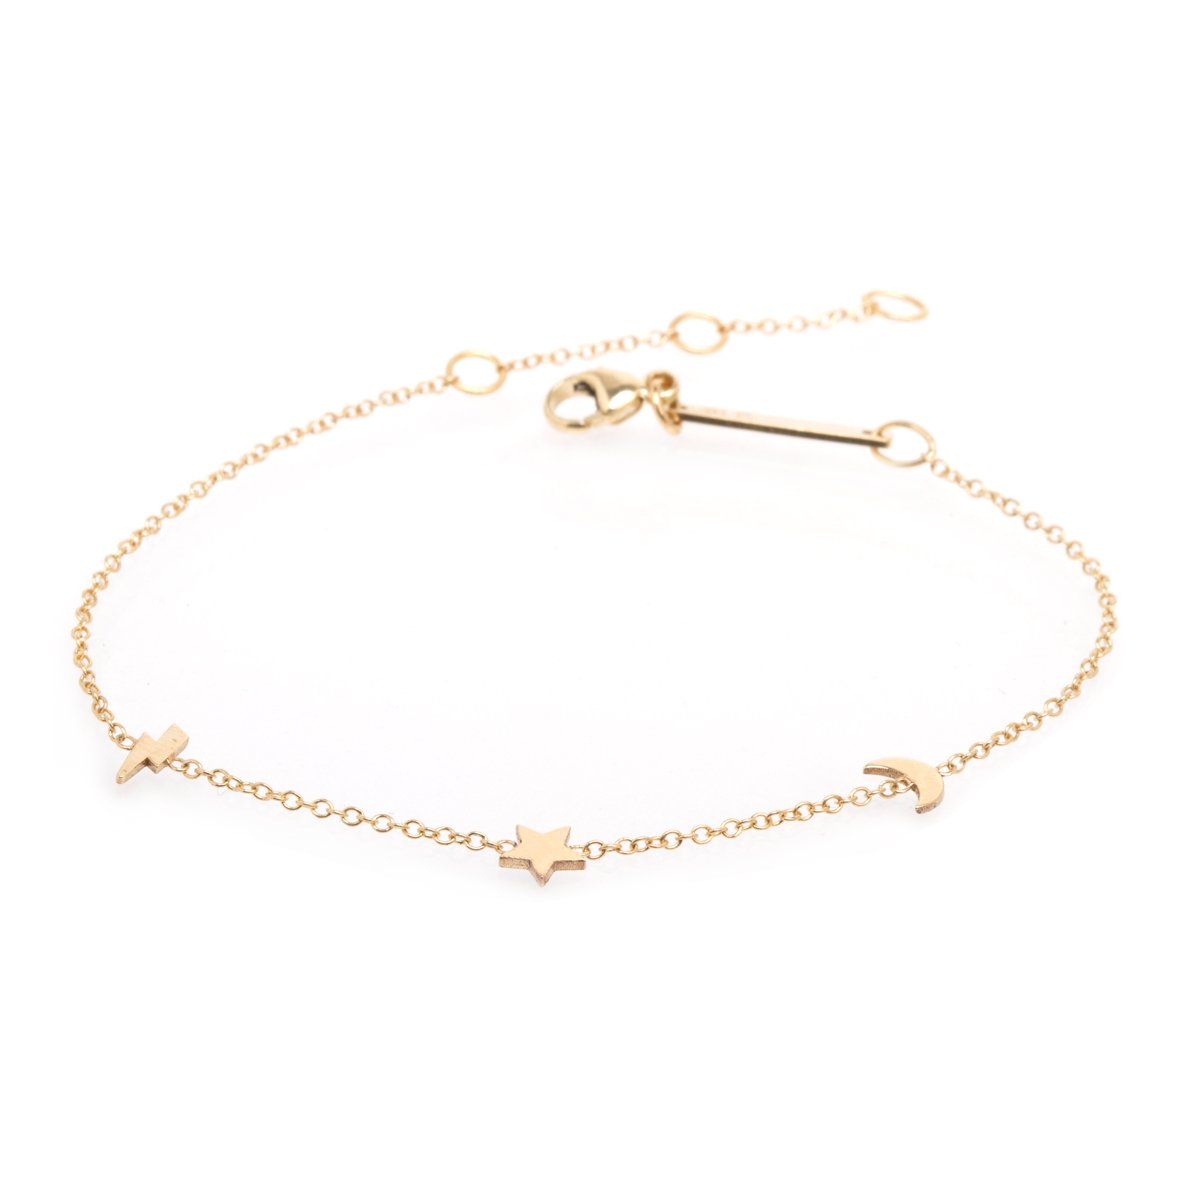 Zoe Chicco 14k Gold Itty Bitty Night Sky Bracelet